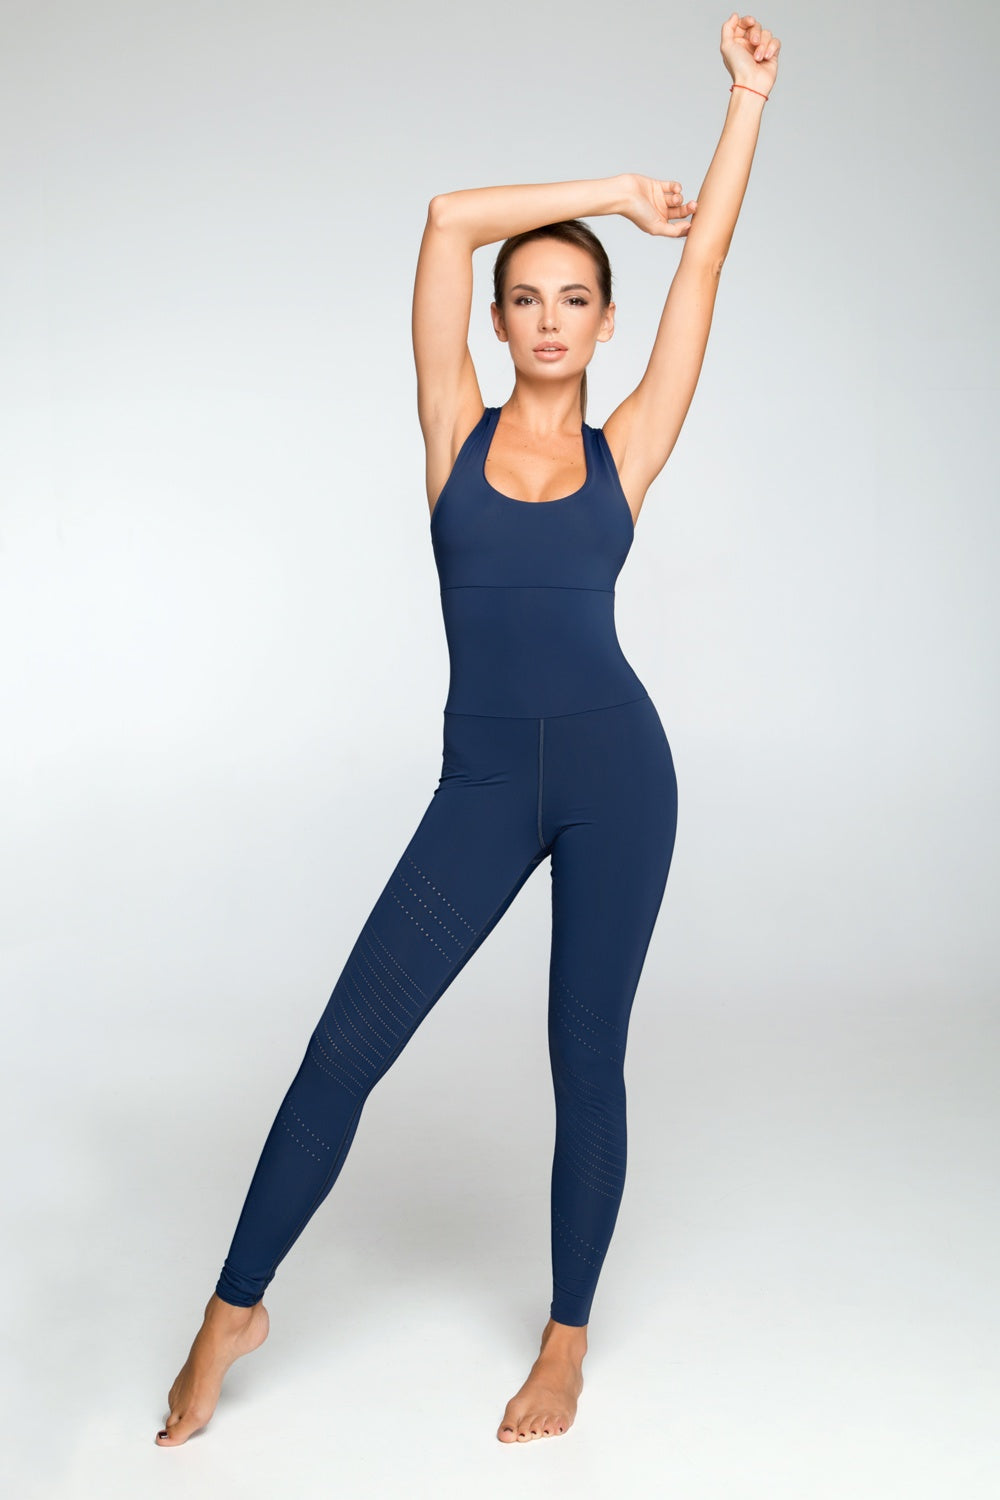 Pixelation Navy Jumpsuit - Designed for Fitness